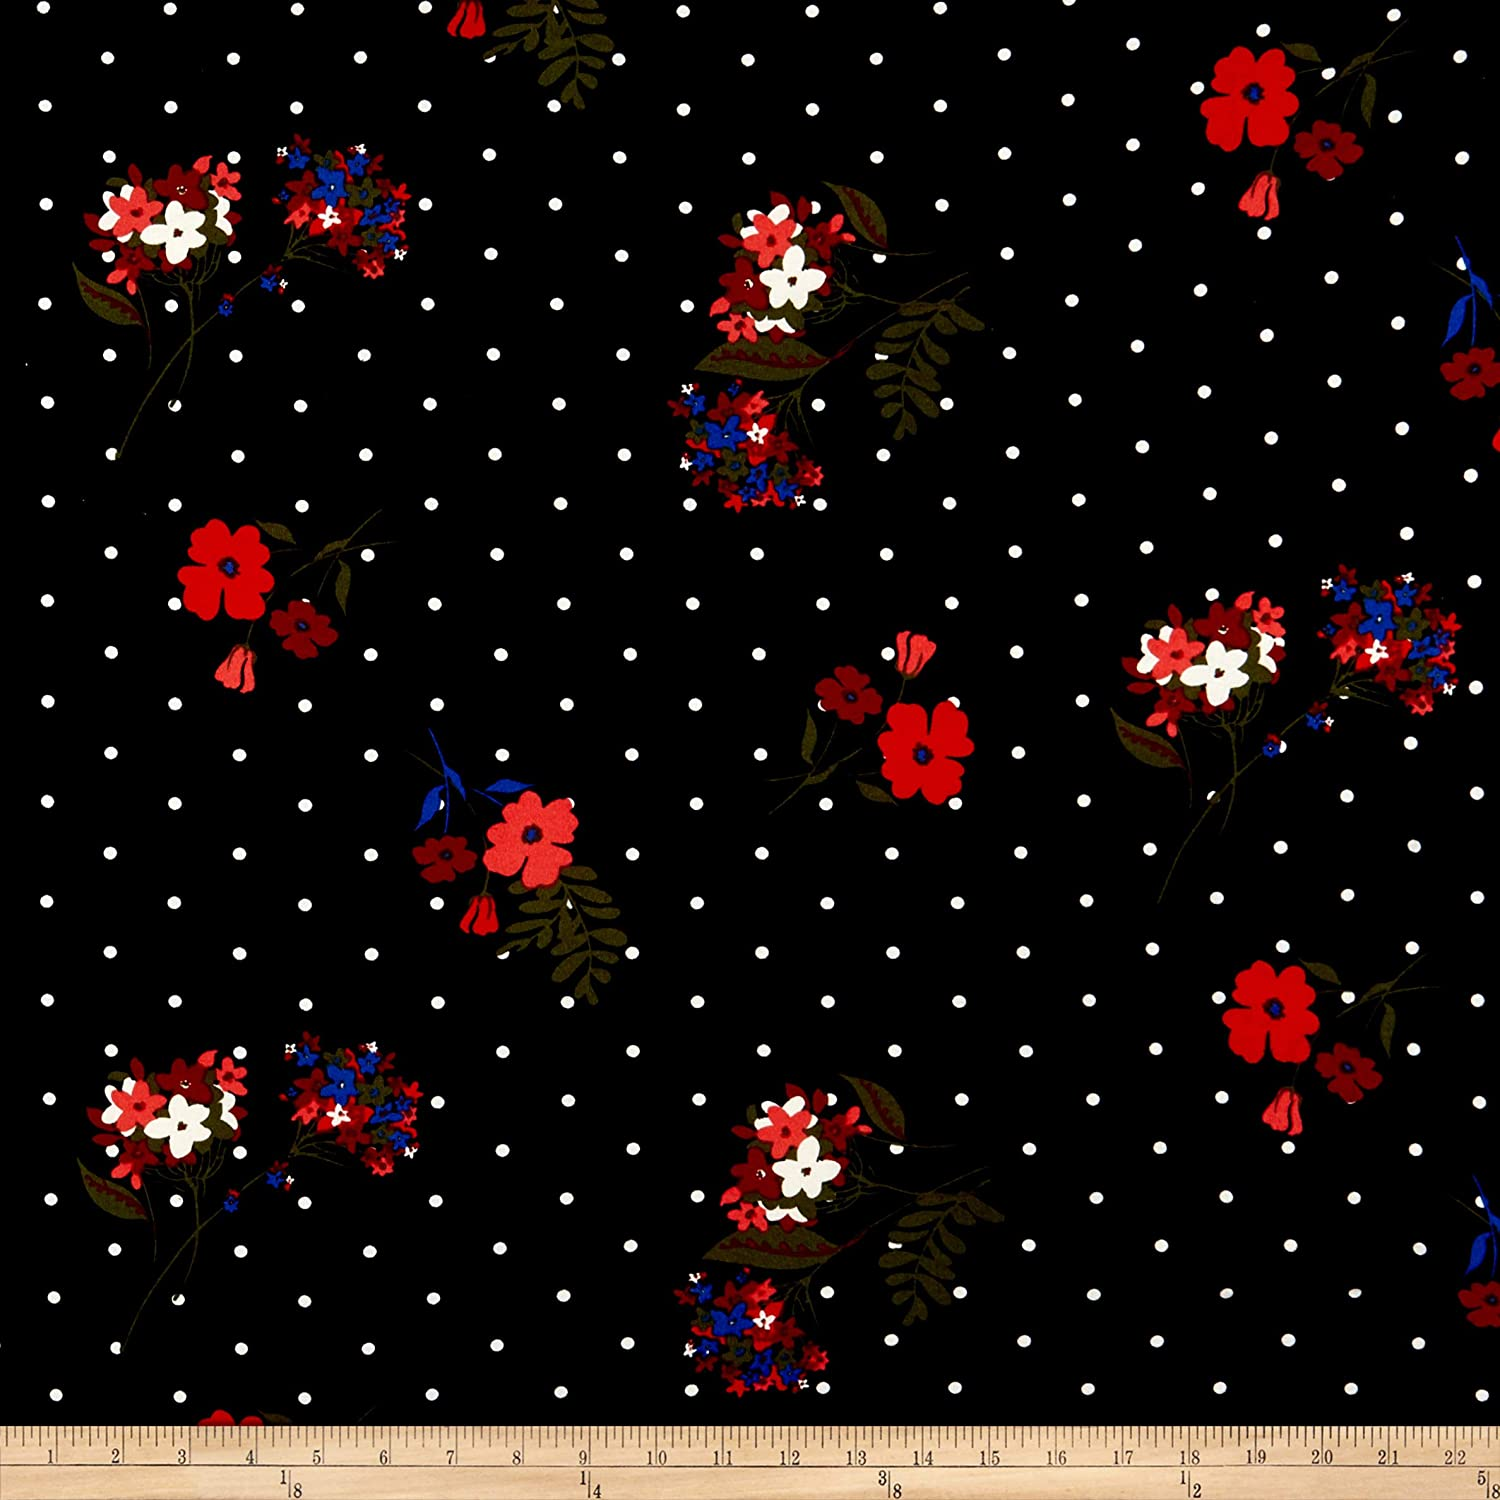 79c3bba6295 Amazon.com: Fabric Merchants Double Brushed Poly Jersey Knit Dots and  Floral Fabric, Black/Red, Fabric By The Yard